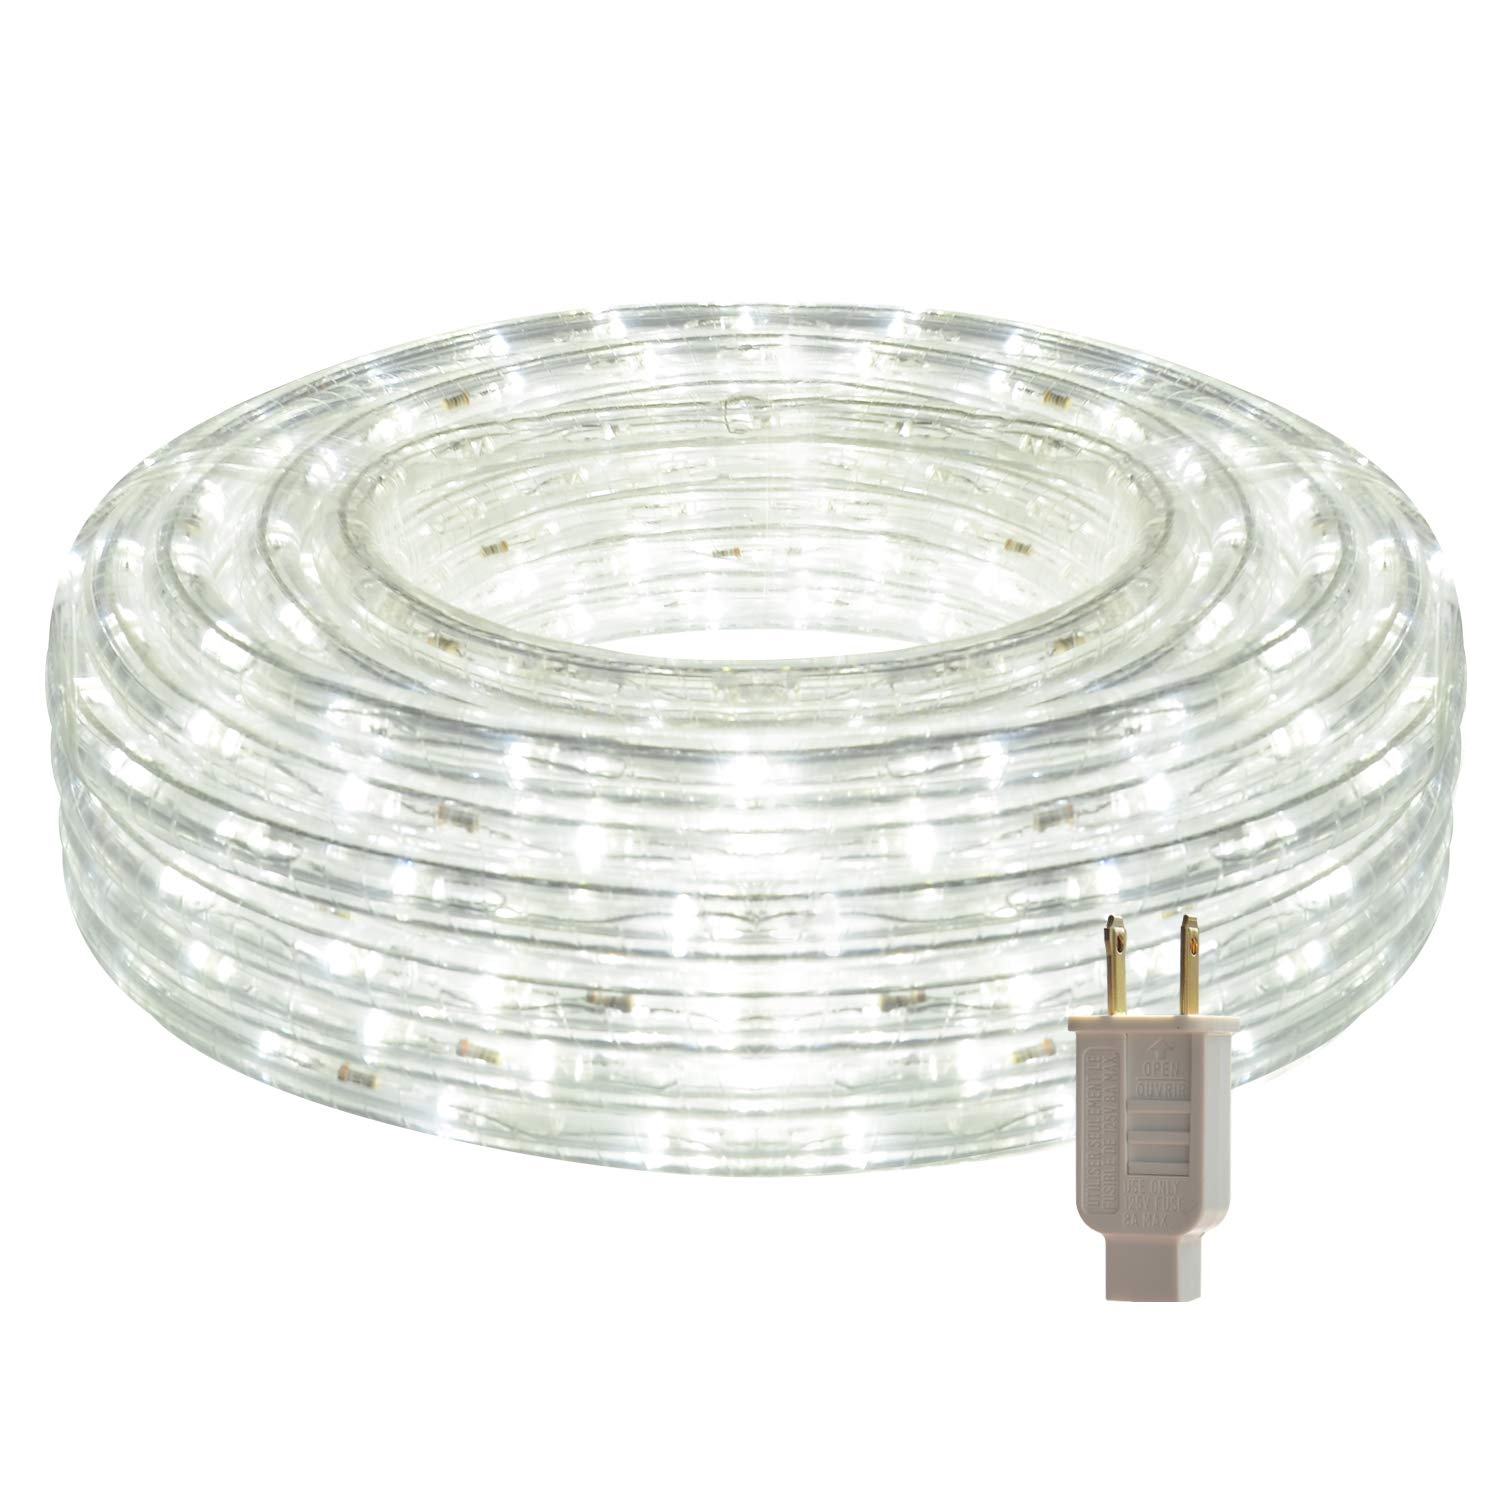 LED Rope Lights, 26.3ft Flat Flexible Light Strip, 6000K Daylight White, Water Resistant for Both Indoor/Outdoor Use, Inter-Connectable, UL Certified, Decorative Lighting for Any Location.